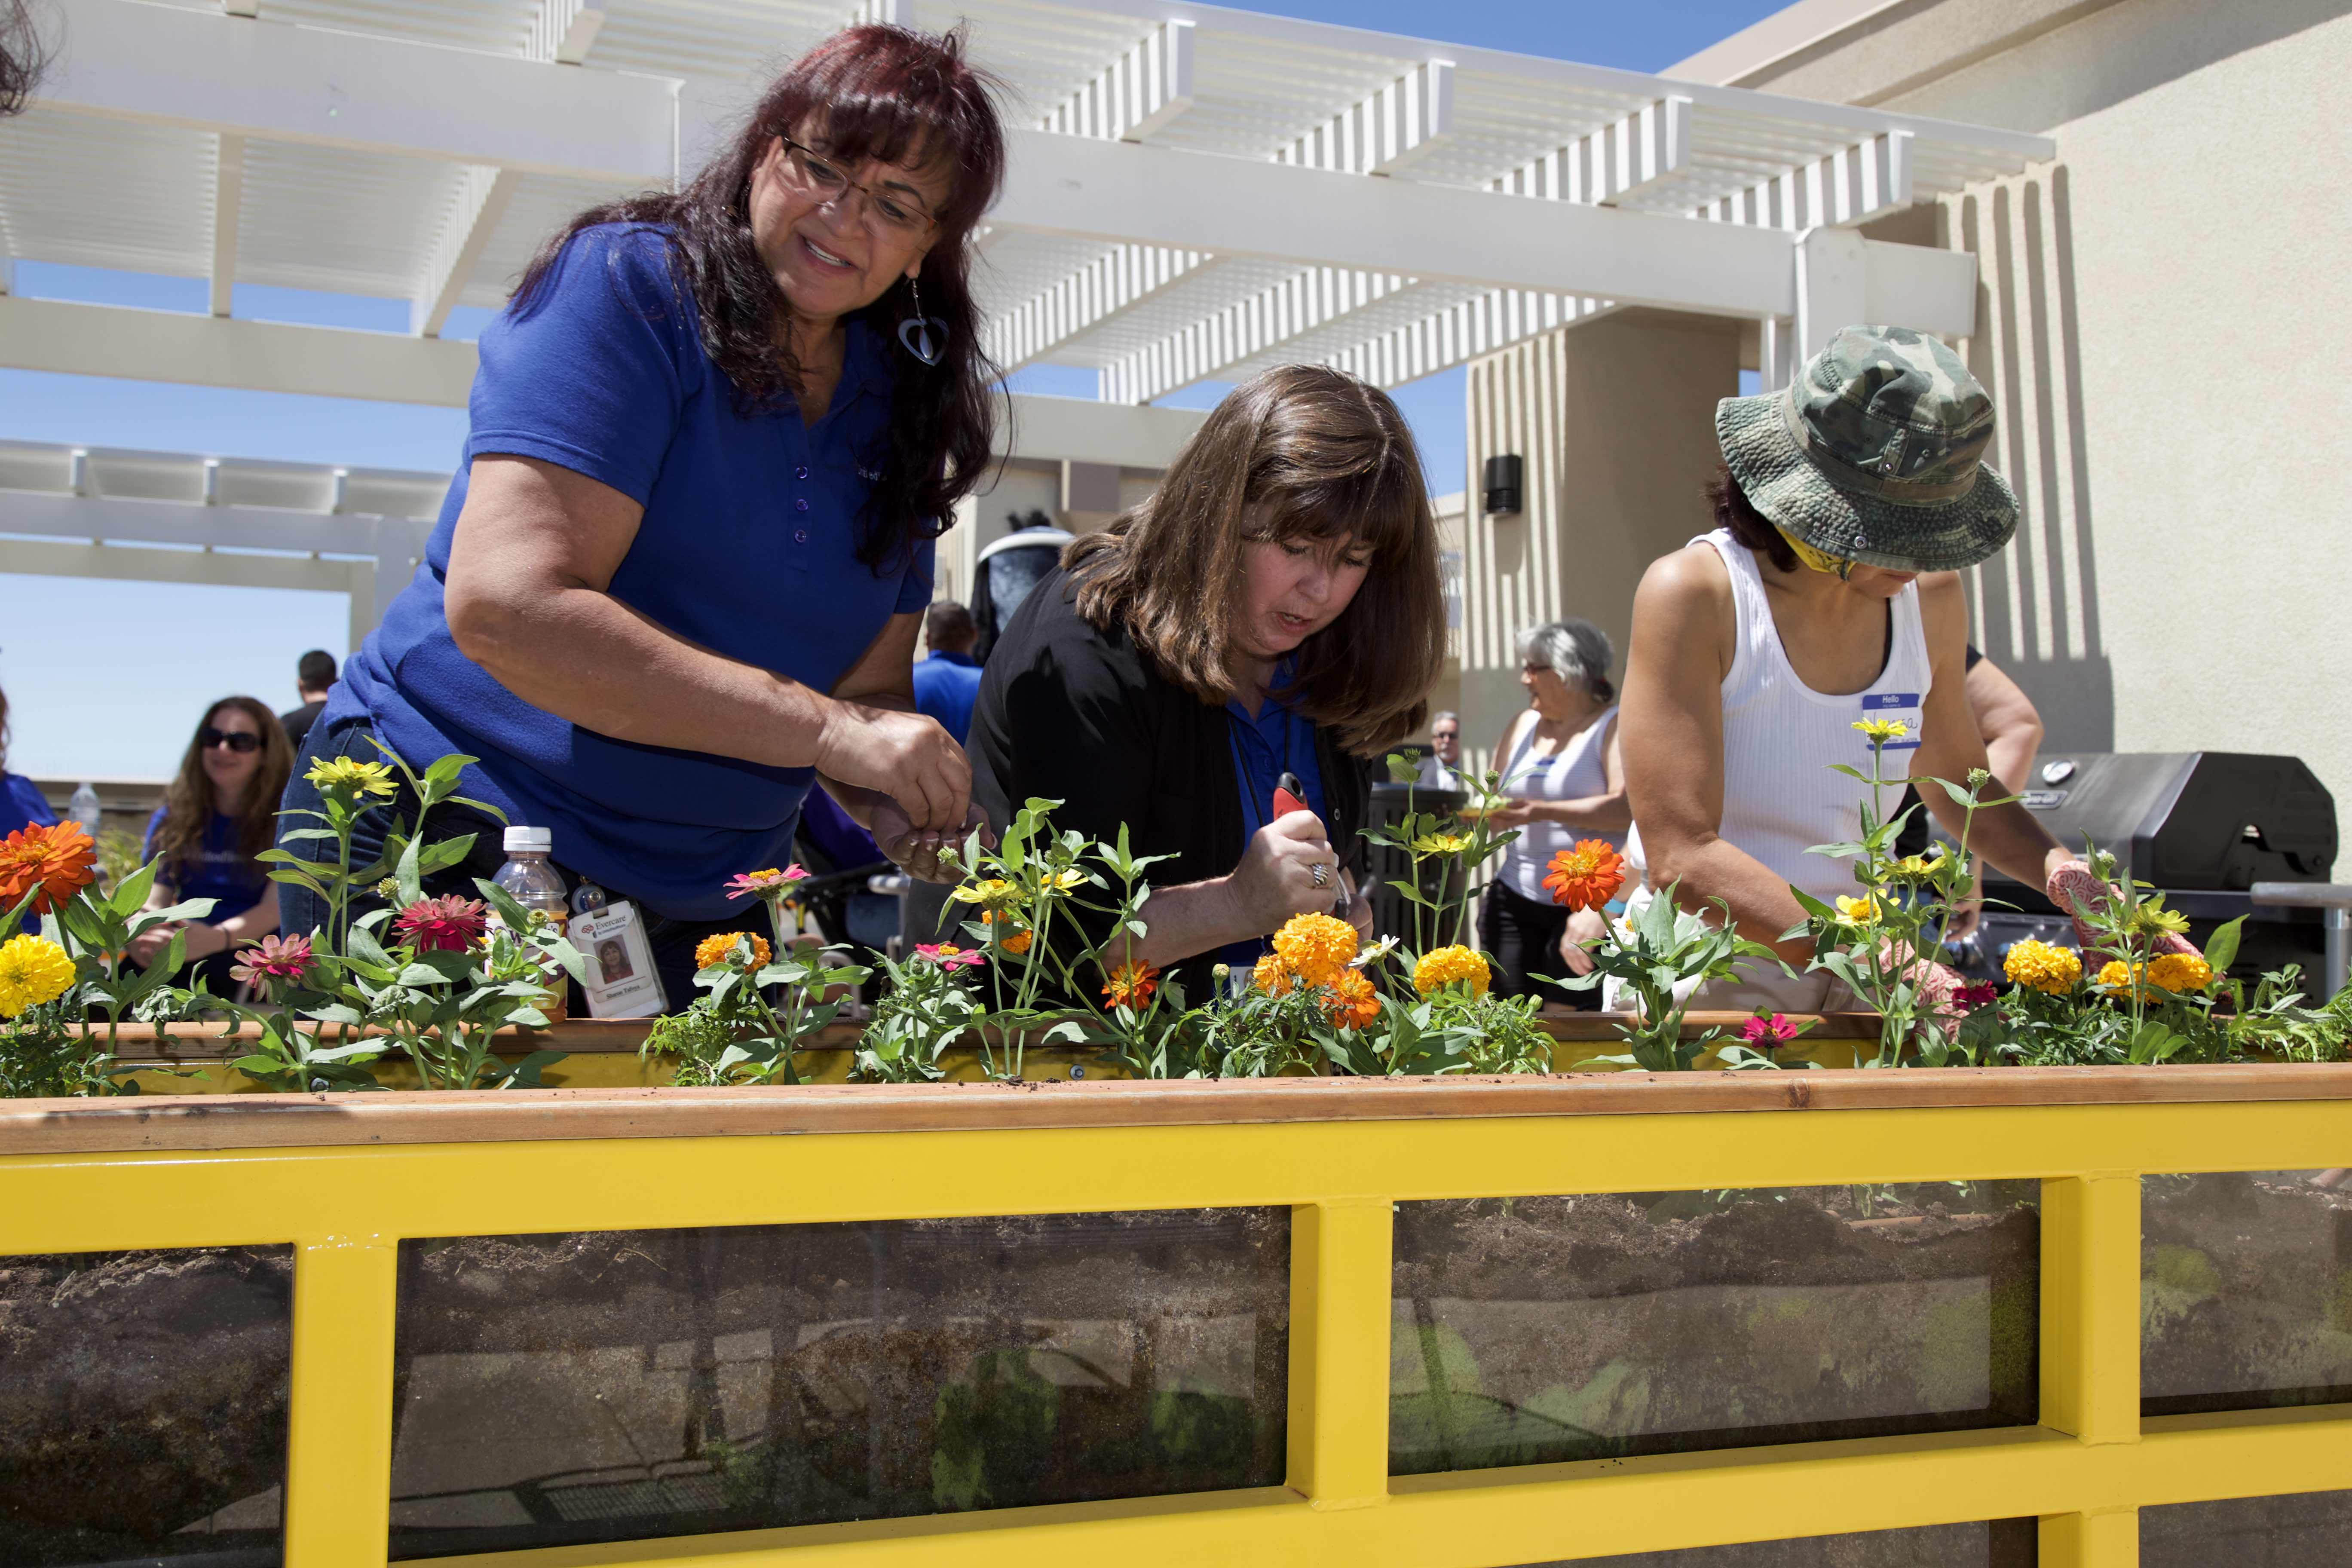 UnitedHealthcare employees and residents of The Imperial Building plant flowers for pollination for a rooftop garden funded through a grant by UnitedHealthcare and YES Housing. L to R: UnitedHealthcare employees Sharon Tafoya and Mary Ann Hennigan, and The Imperial Building resident Vanessa Sanchez (Photo: David Martinez).